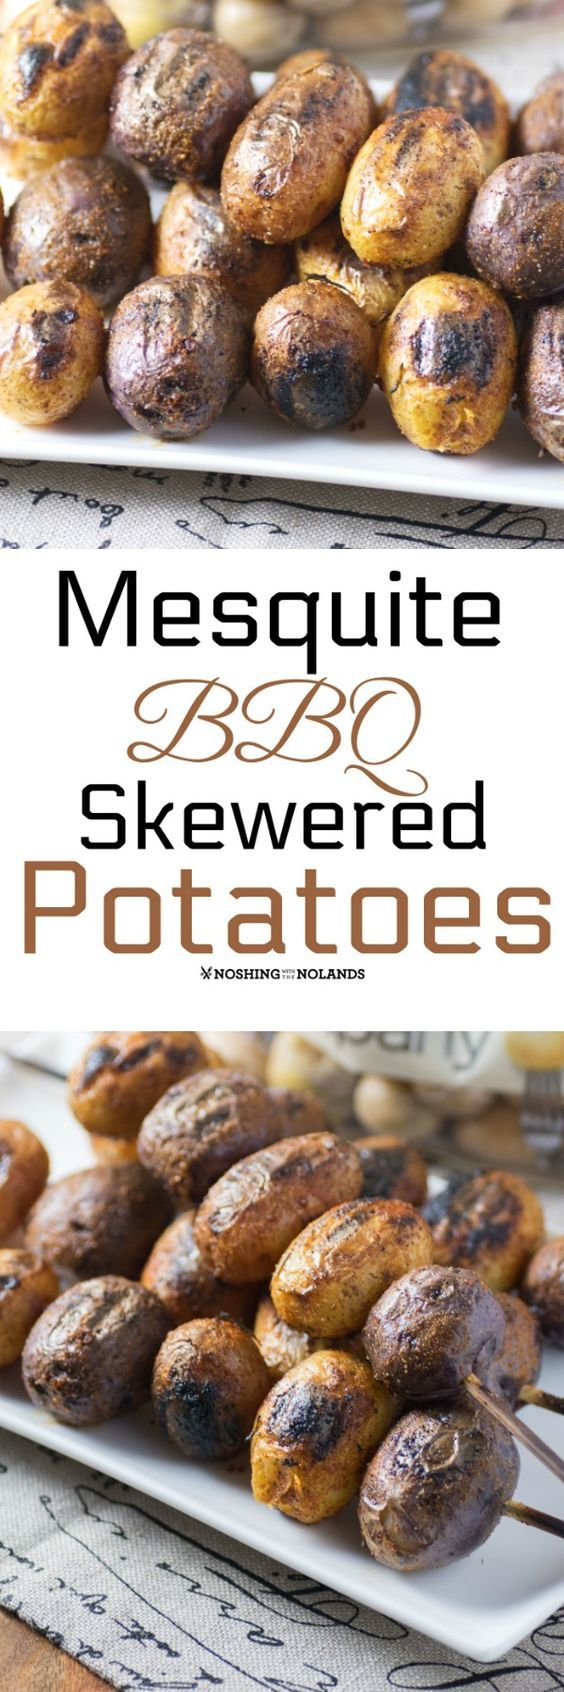 Mesquite BBQ Skewered Potatoes by Noshing With The Nolands makes for a delicious side dish with their delectable smoky flavor! #ad